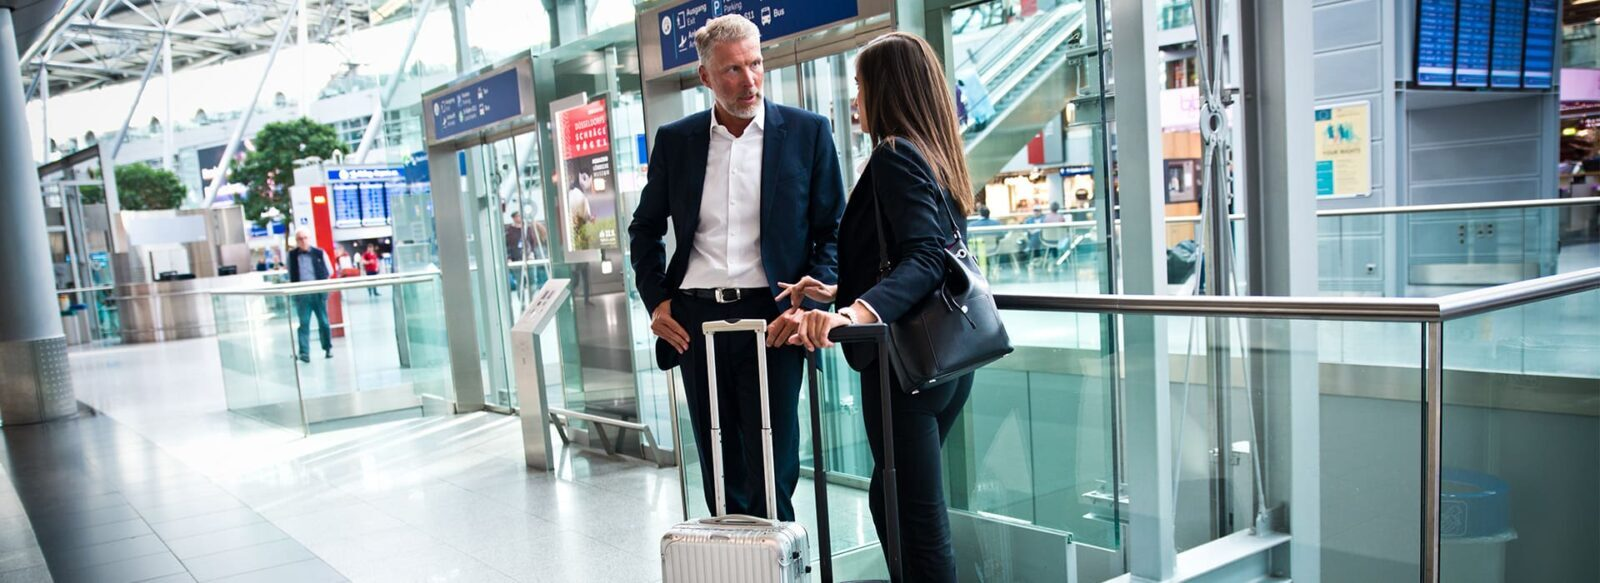 Unternehmen HM Business Travel GmbH Messehotels Travel Management - Empresa